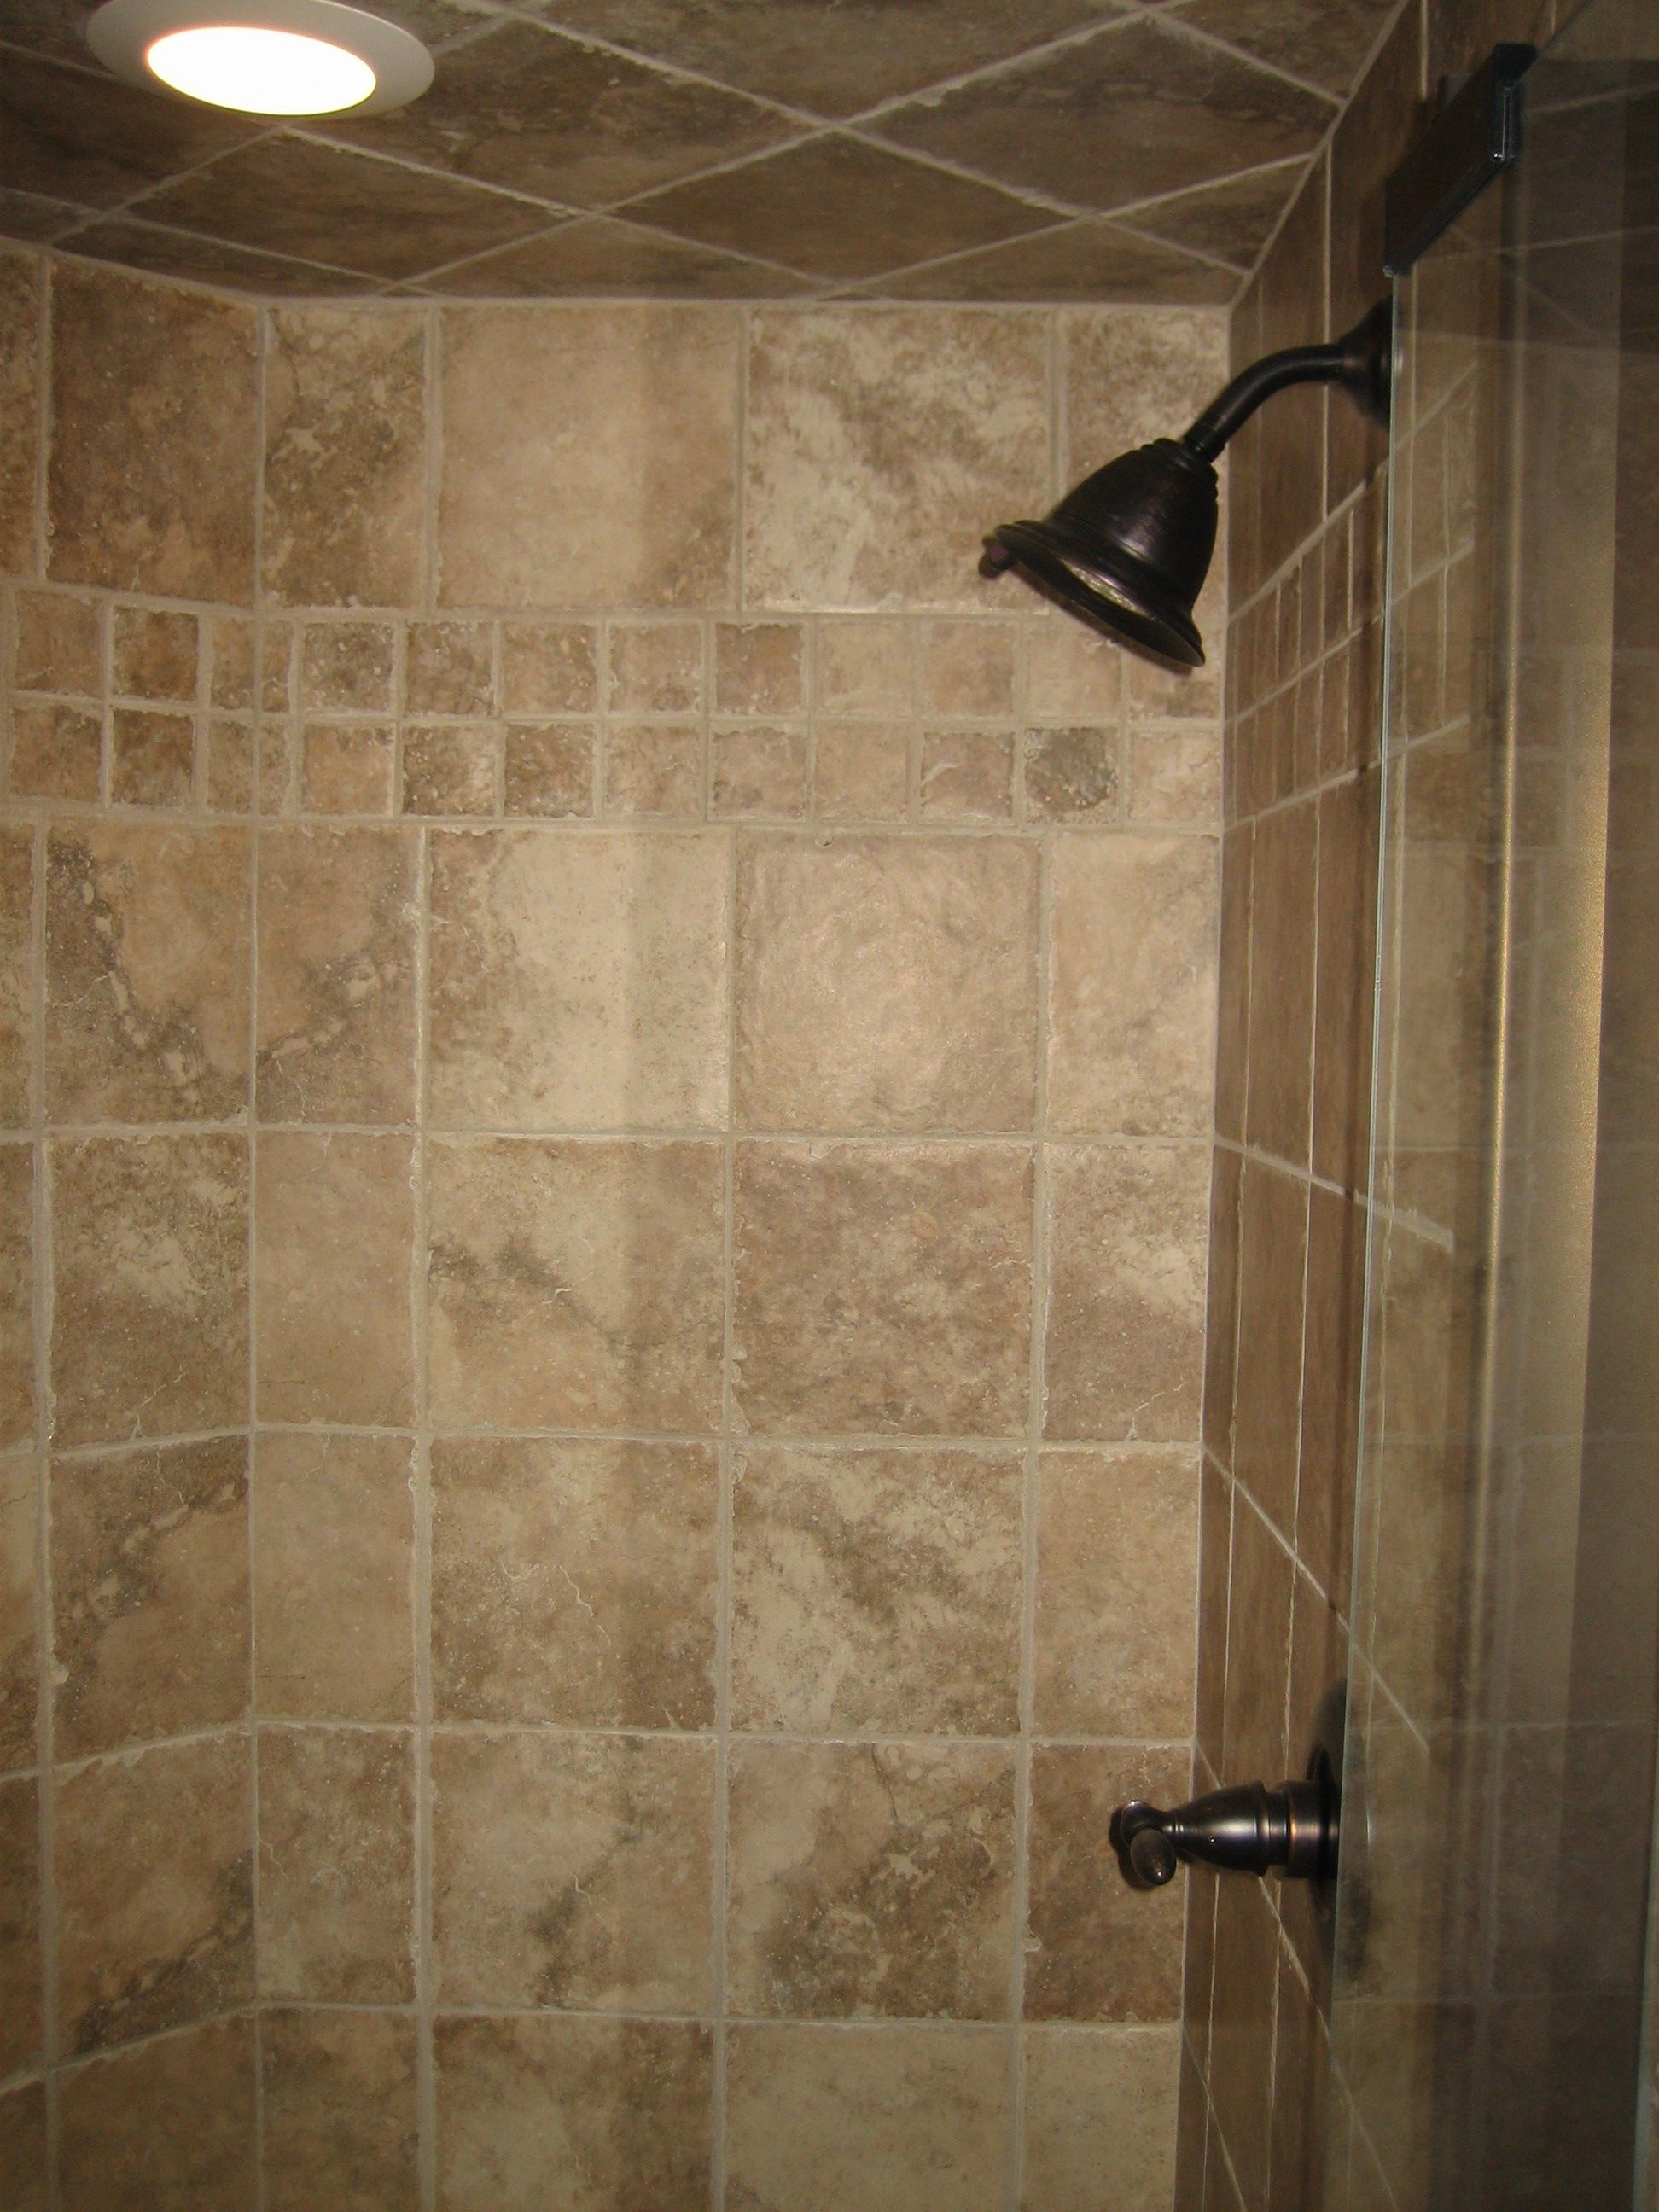 Tile Shower Designs photos of tiled shower stalls | photos gallery - custom tile work